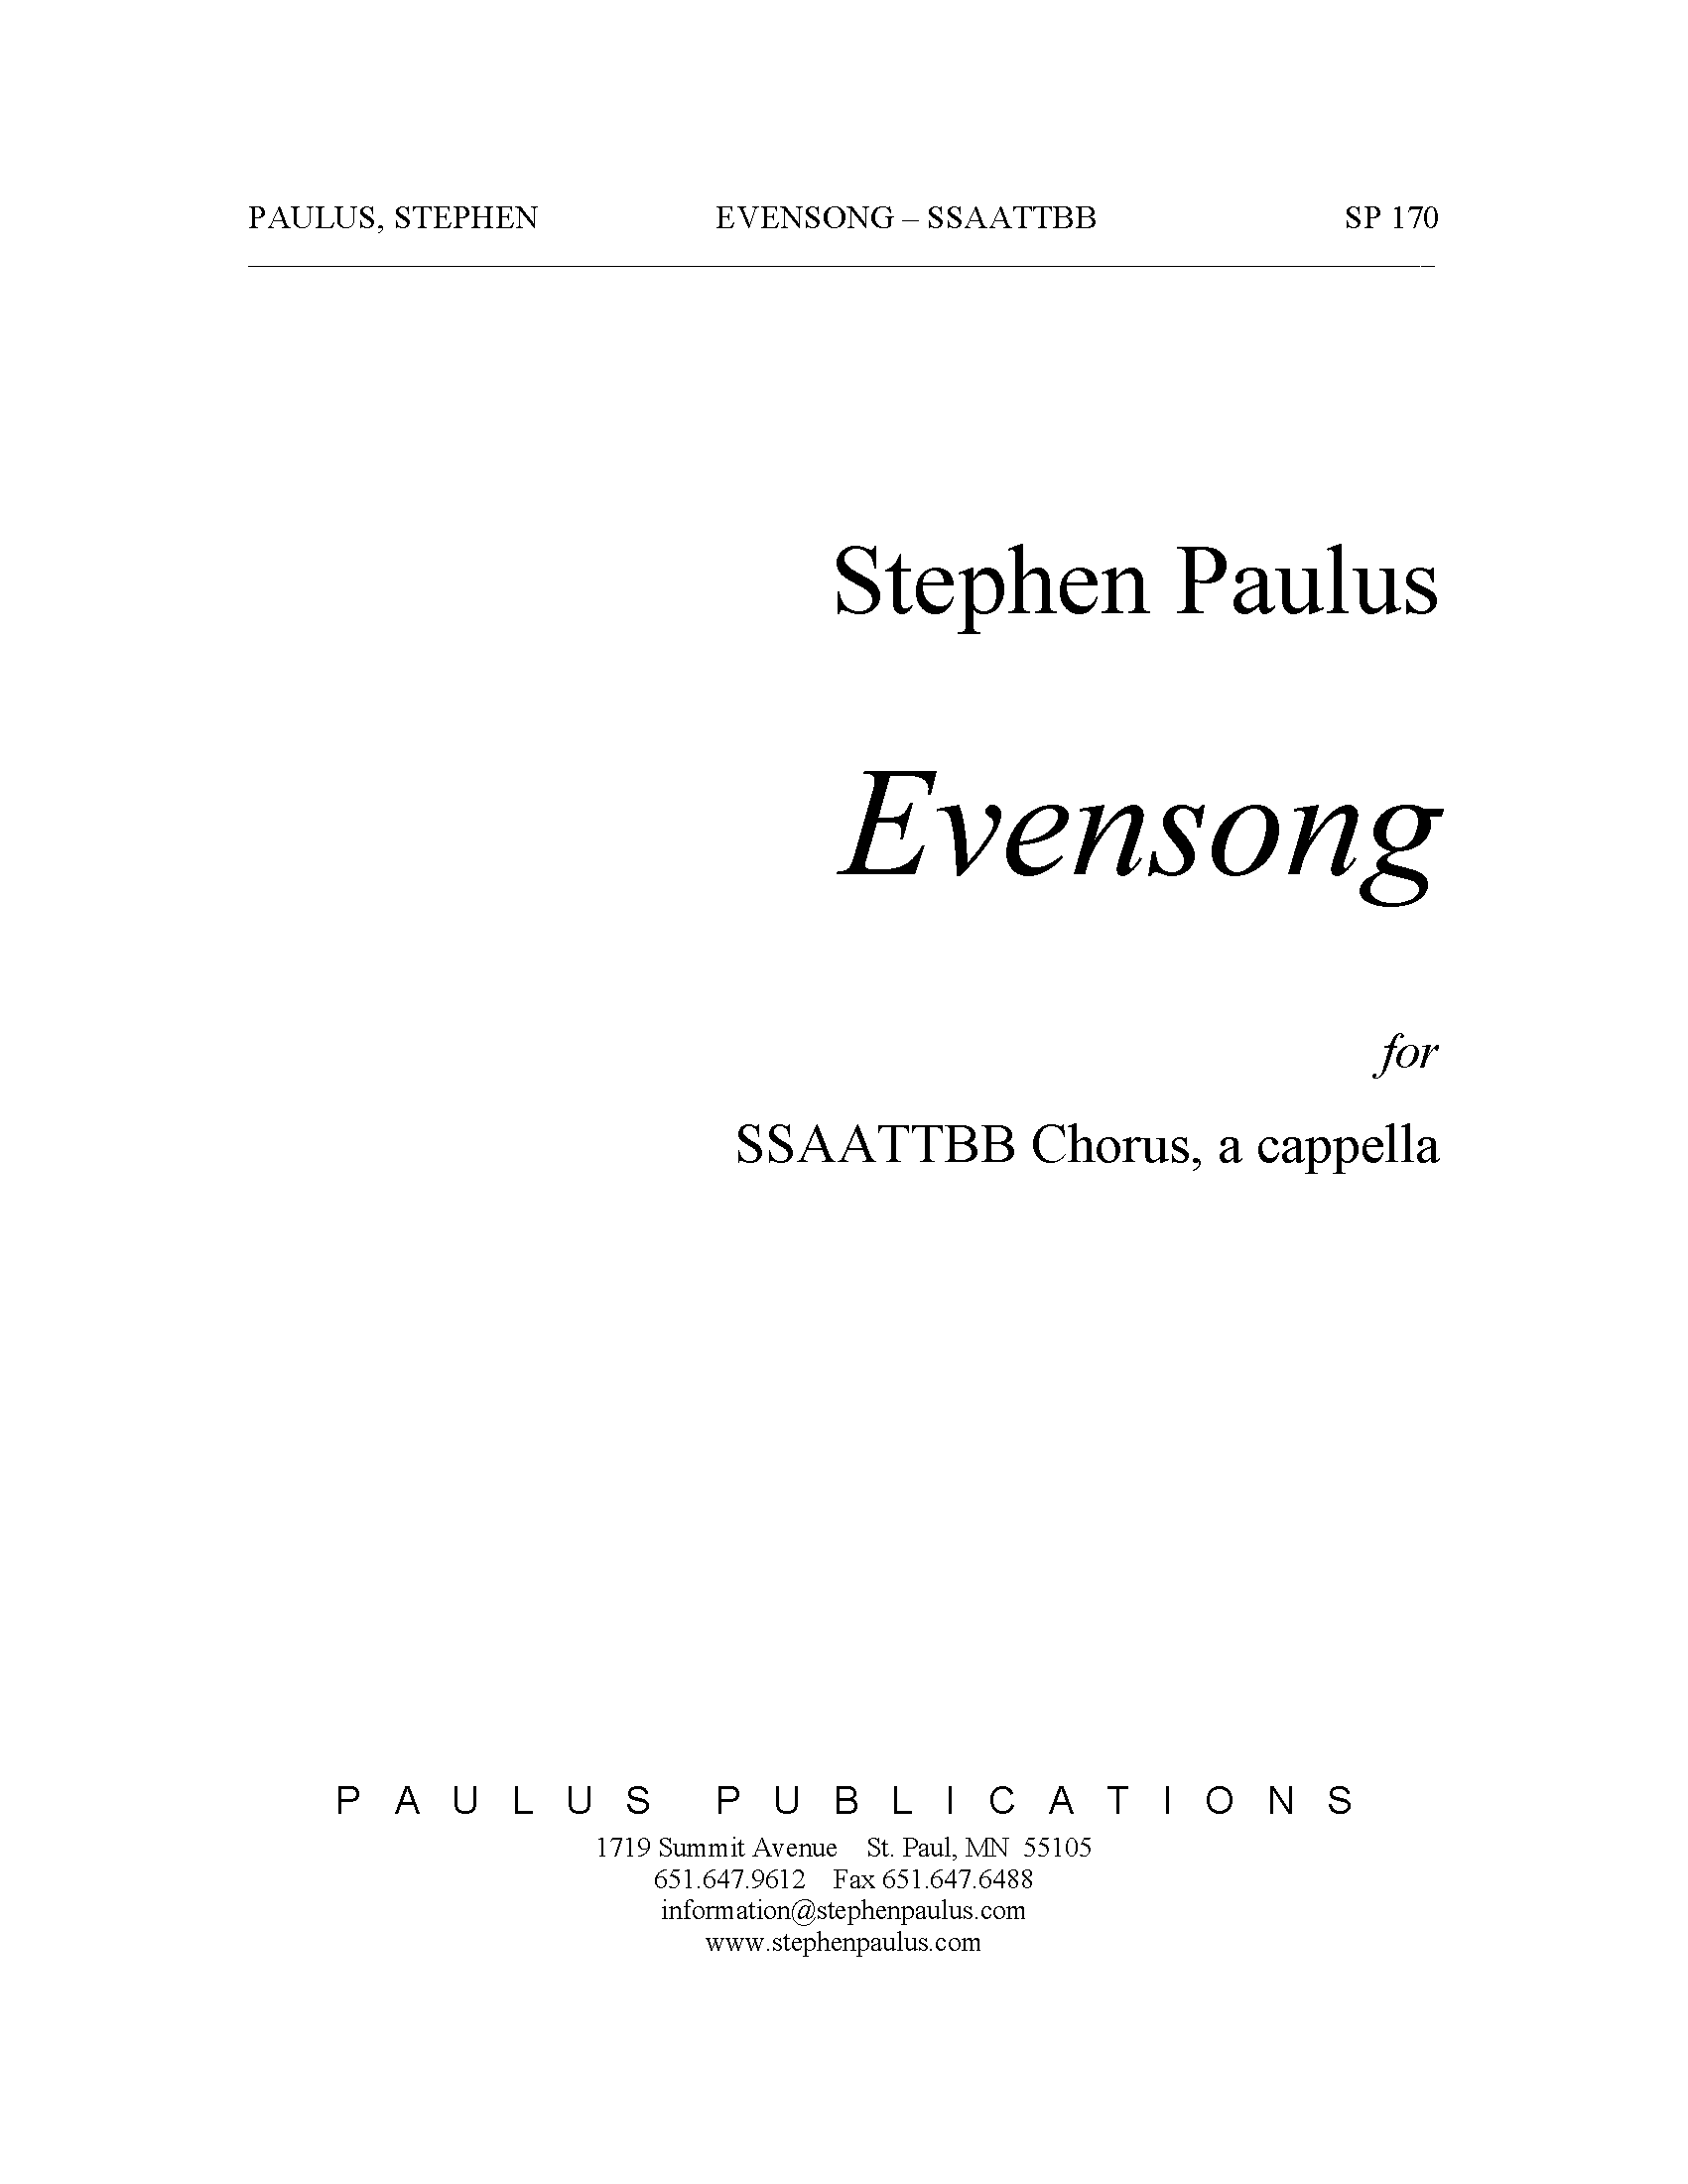 Evensong for SSAATTBB Chorus, a cappella